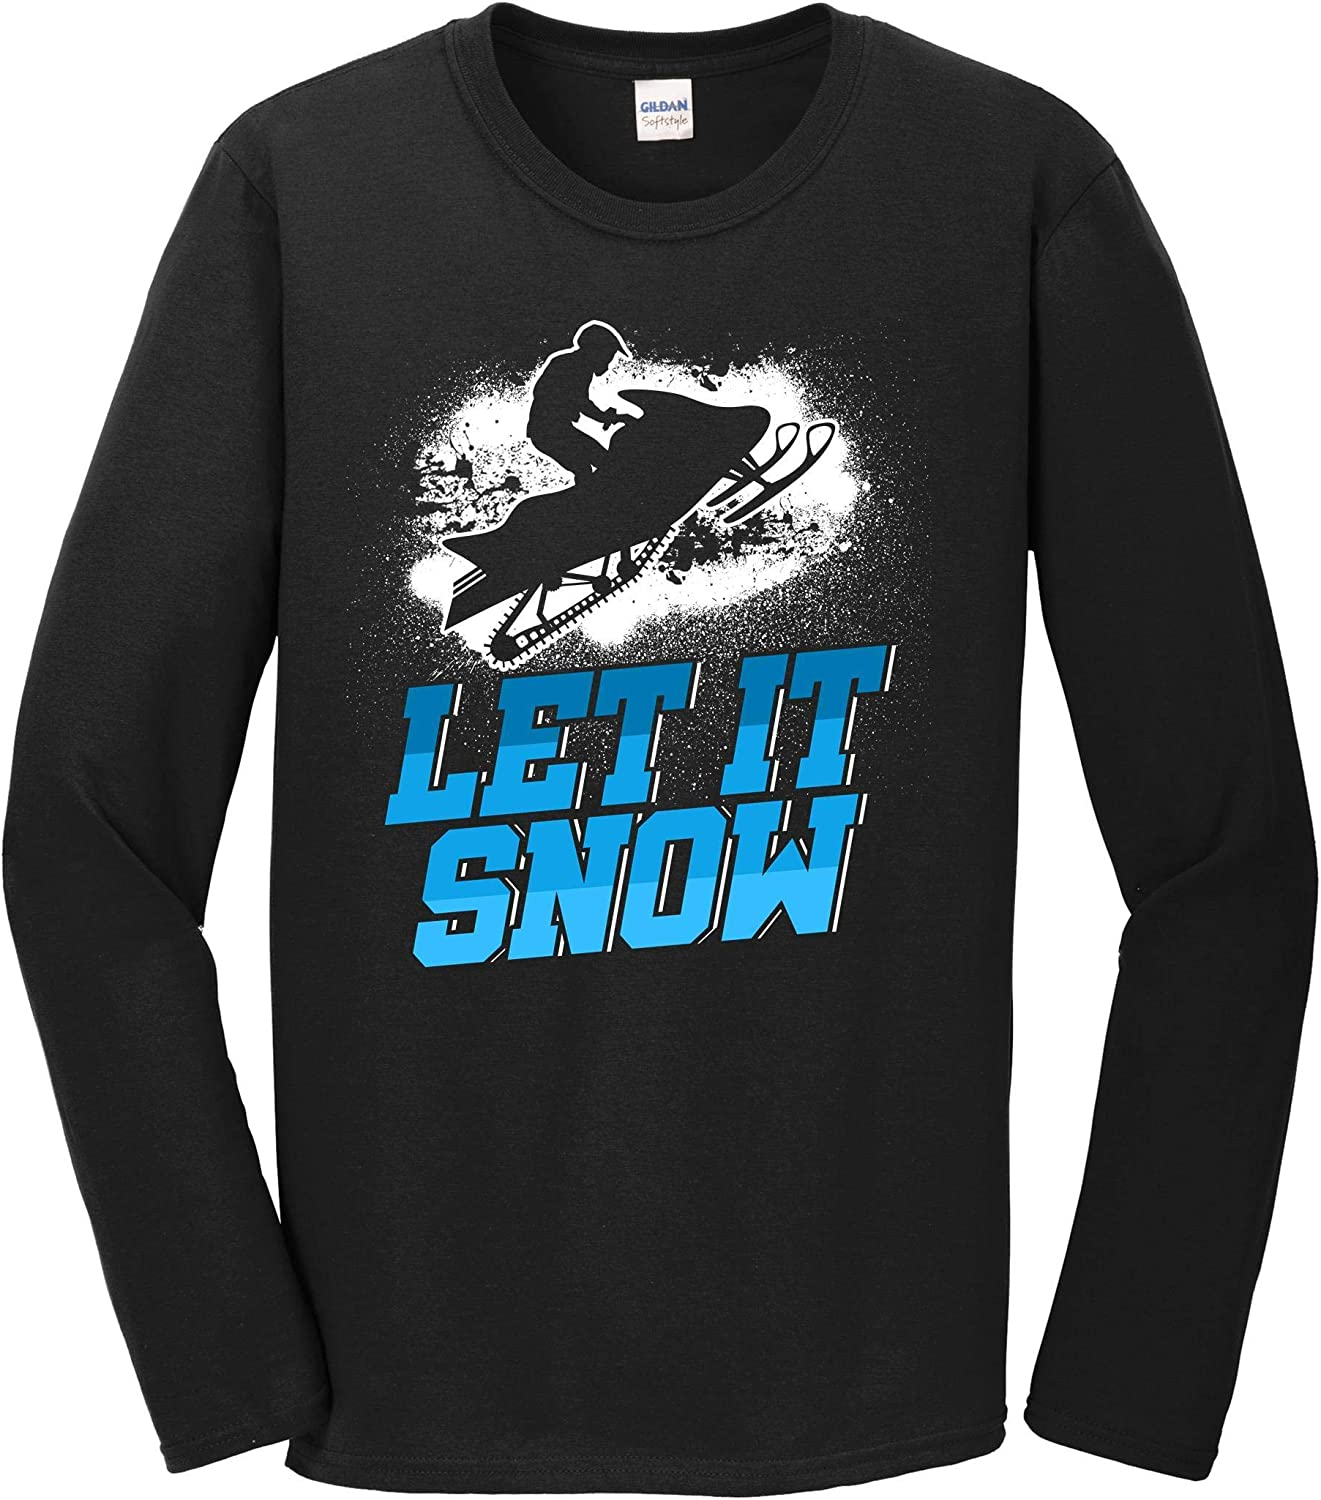 Really Awesome Shirts Let It Snow Snowmobile T Long Sleeve Funny 5 ☆ Max 53% OFF popular